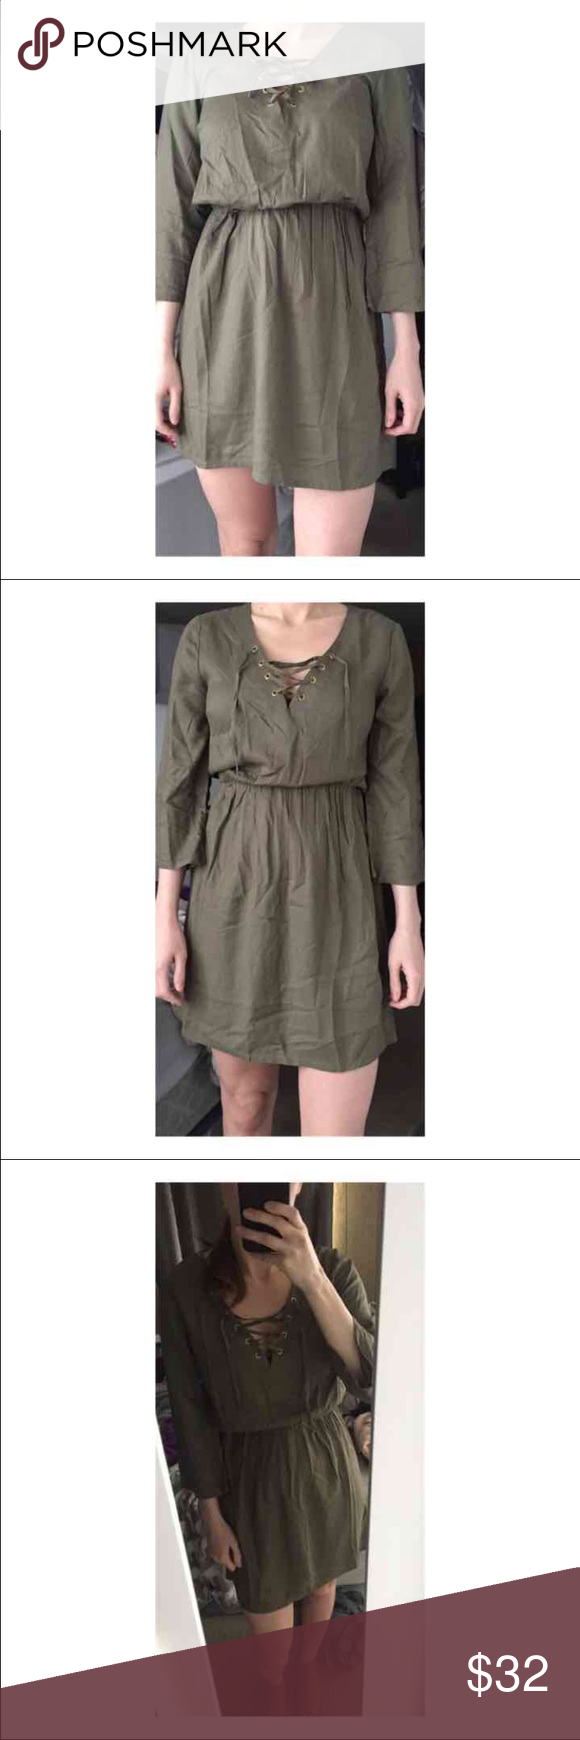 Green lace up dress  HuM Divided Lace Up Tie Front Boho Dress Olive Green New never worn